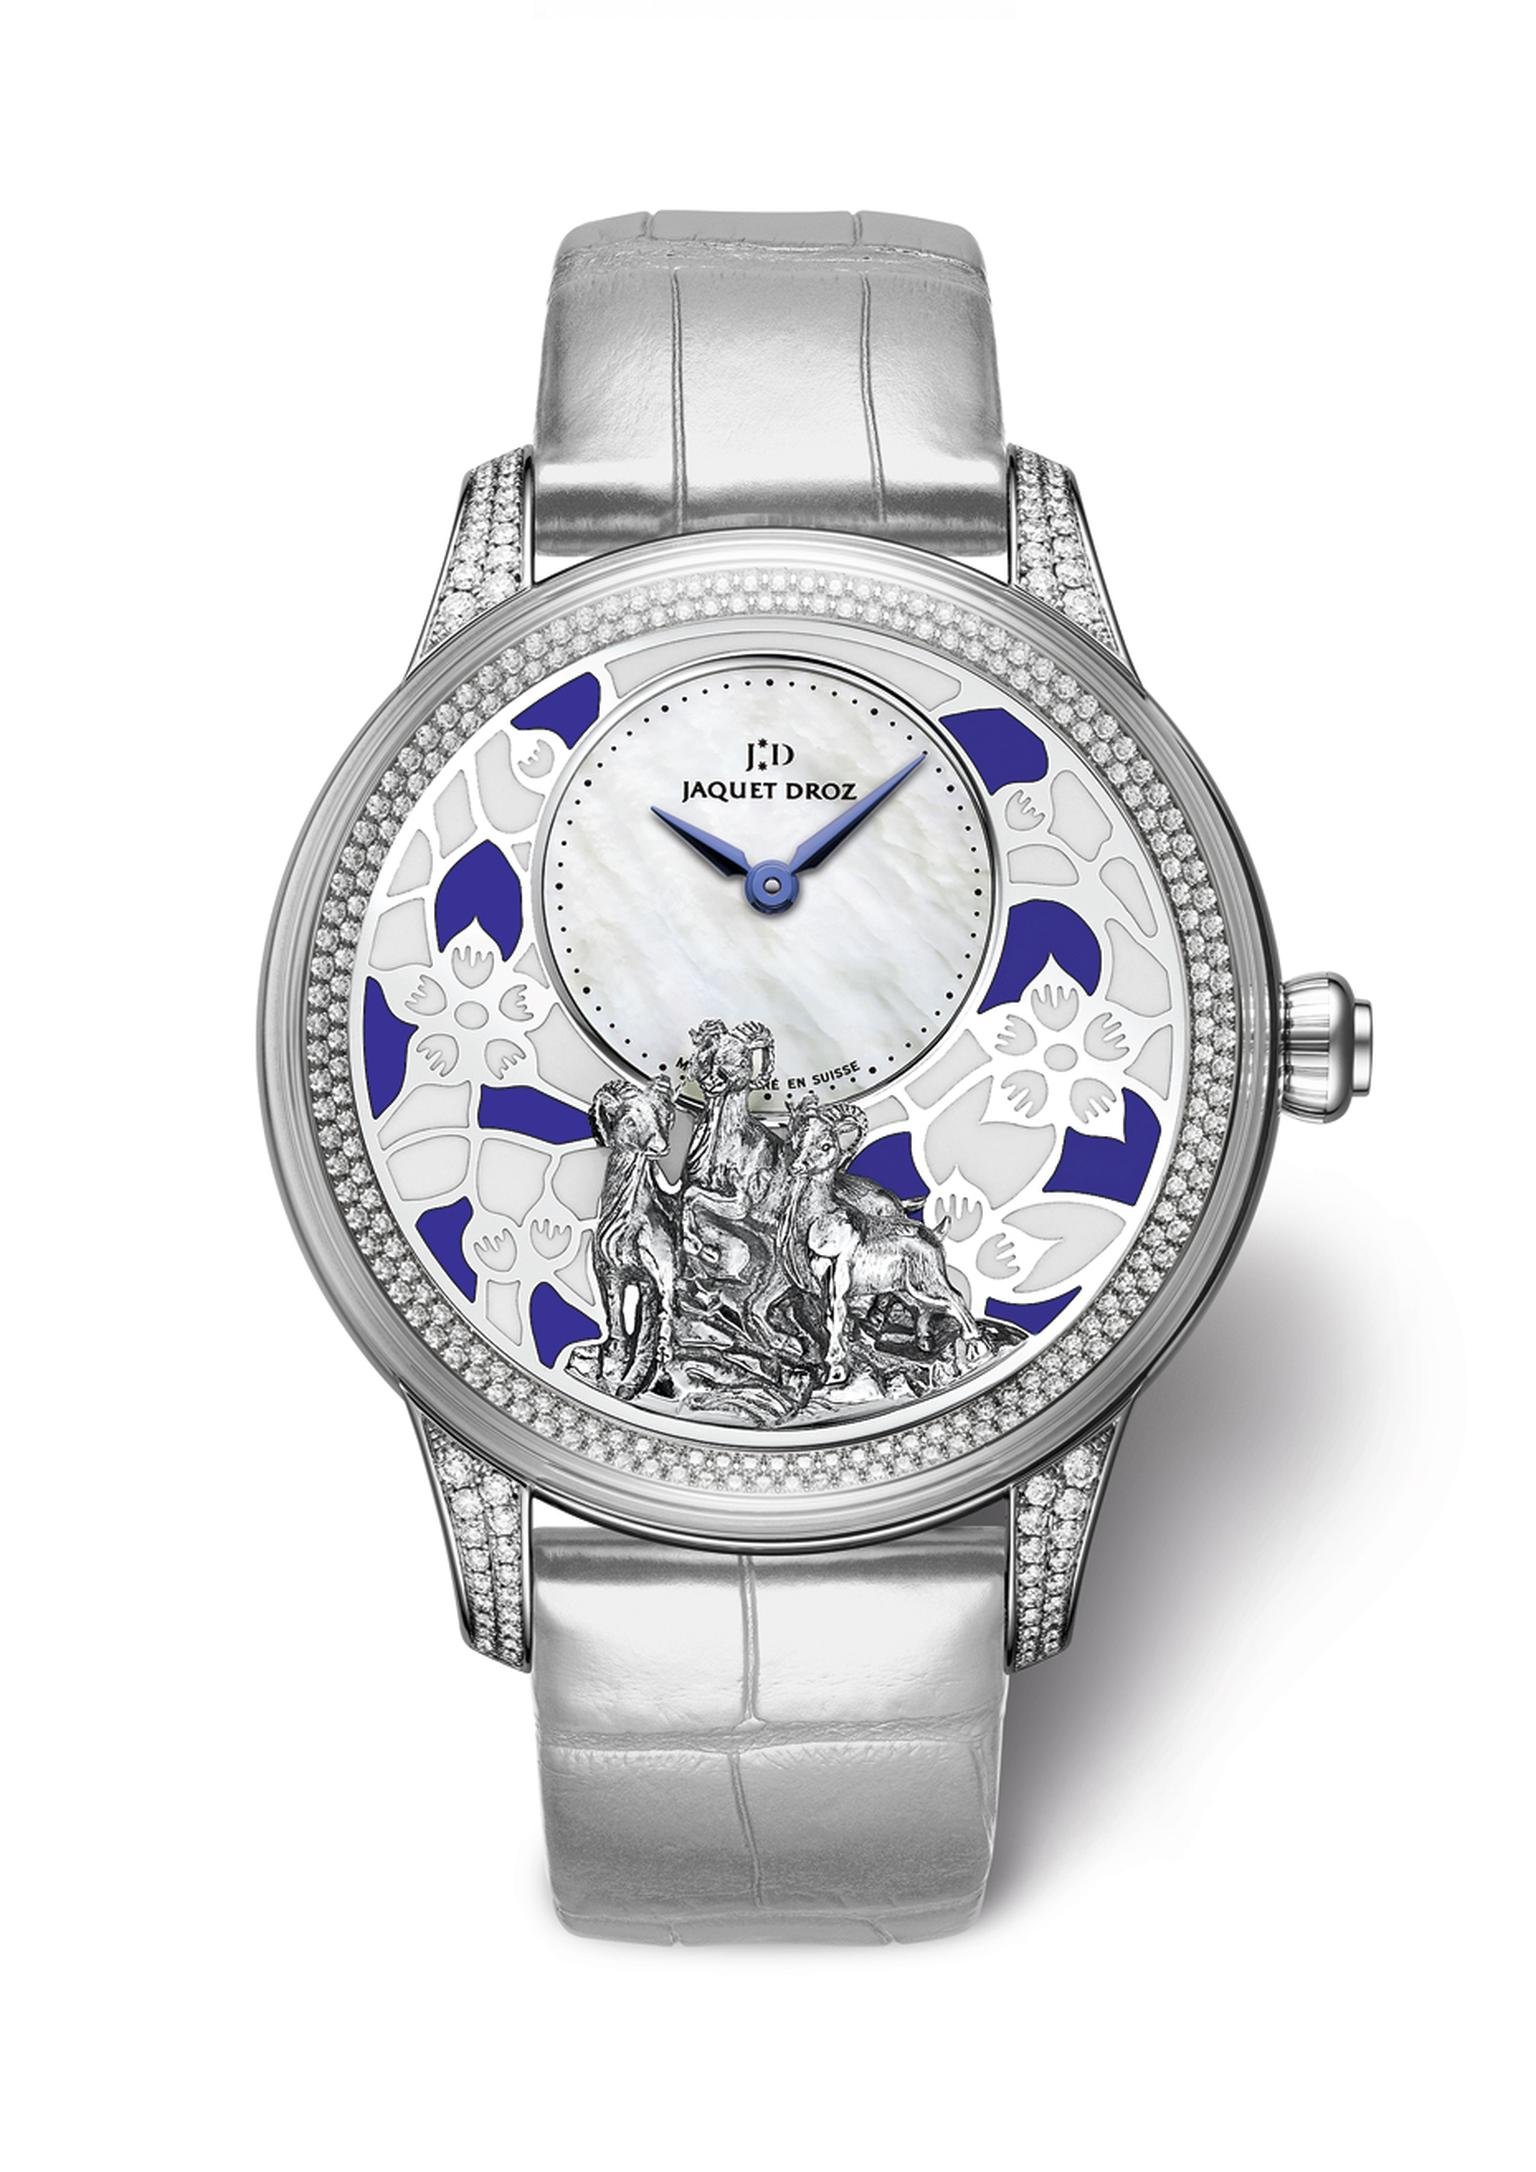 The white gold 41 mm Jaquet Droz Petite Heure Model has been chosen as the vessel for this work of art, which includes a beautiful plum blossom background created with champlevé enamelling set against a white mother-of-pearl dial.